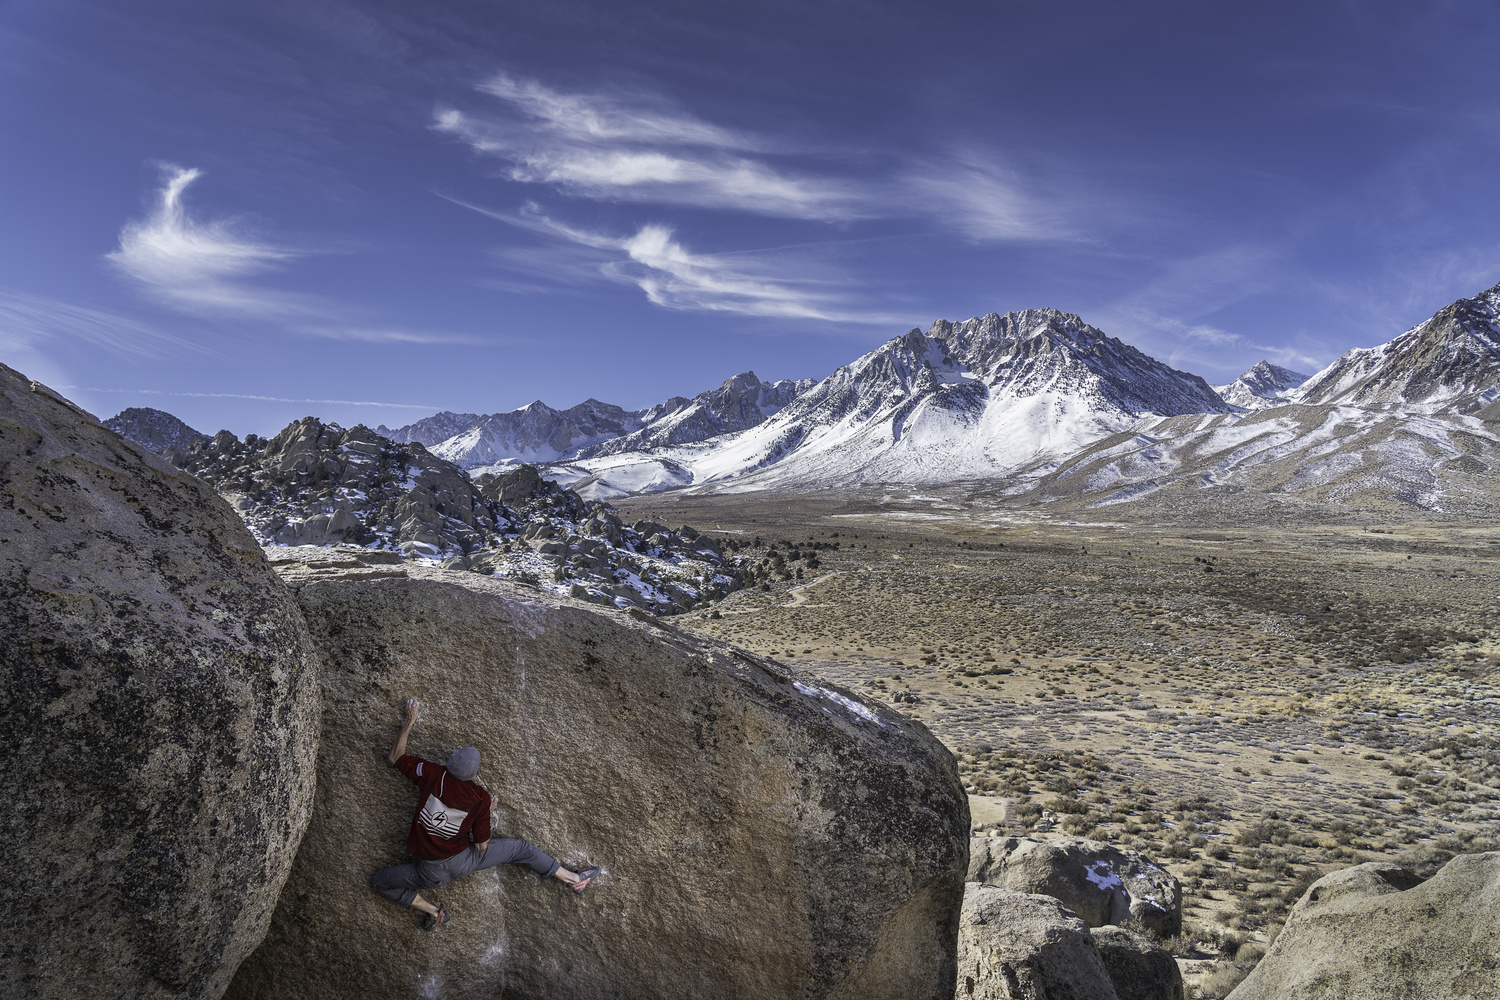 Climbing with a view by Michael Auffant